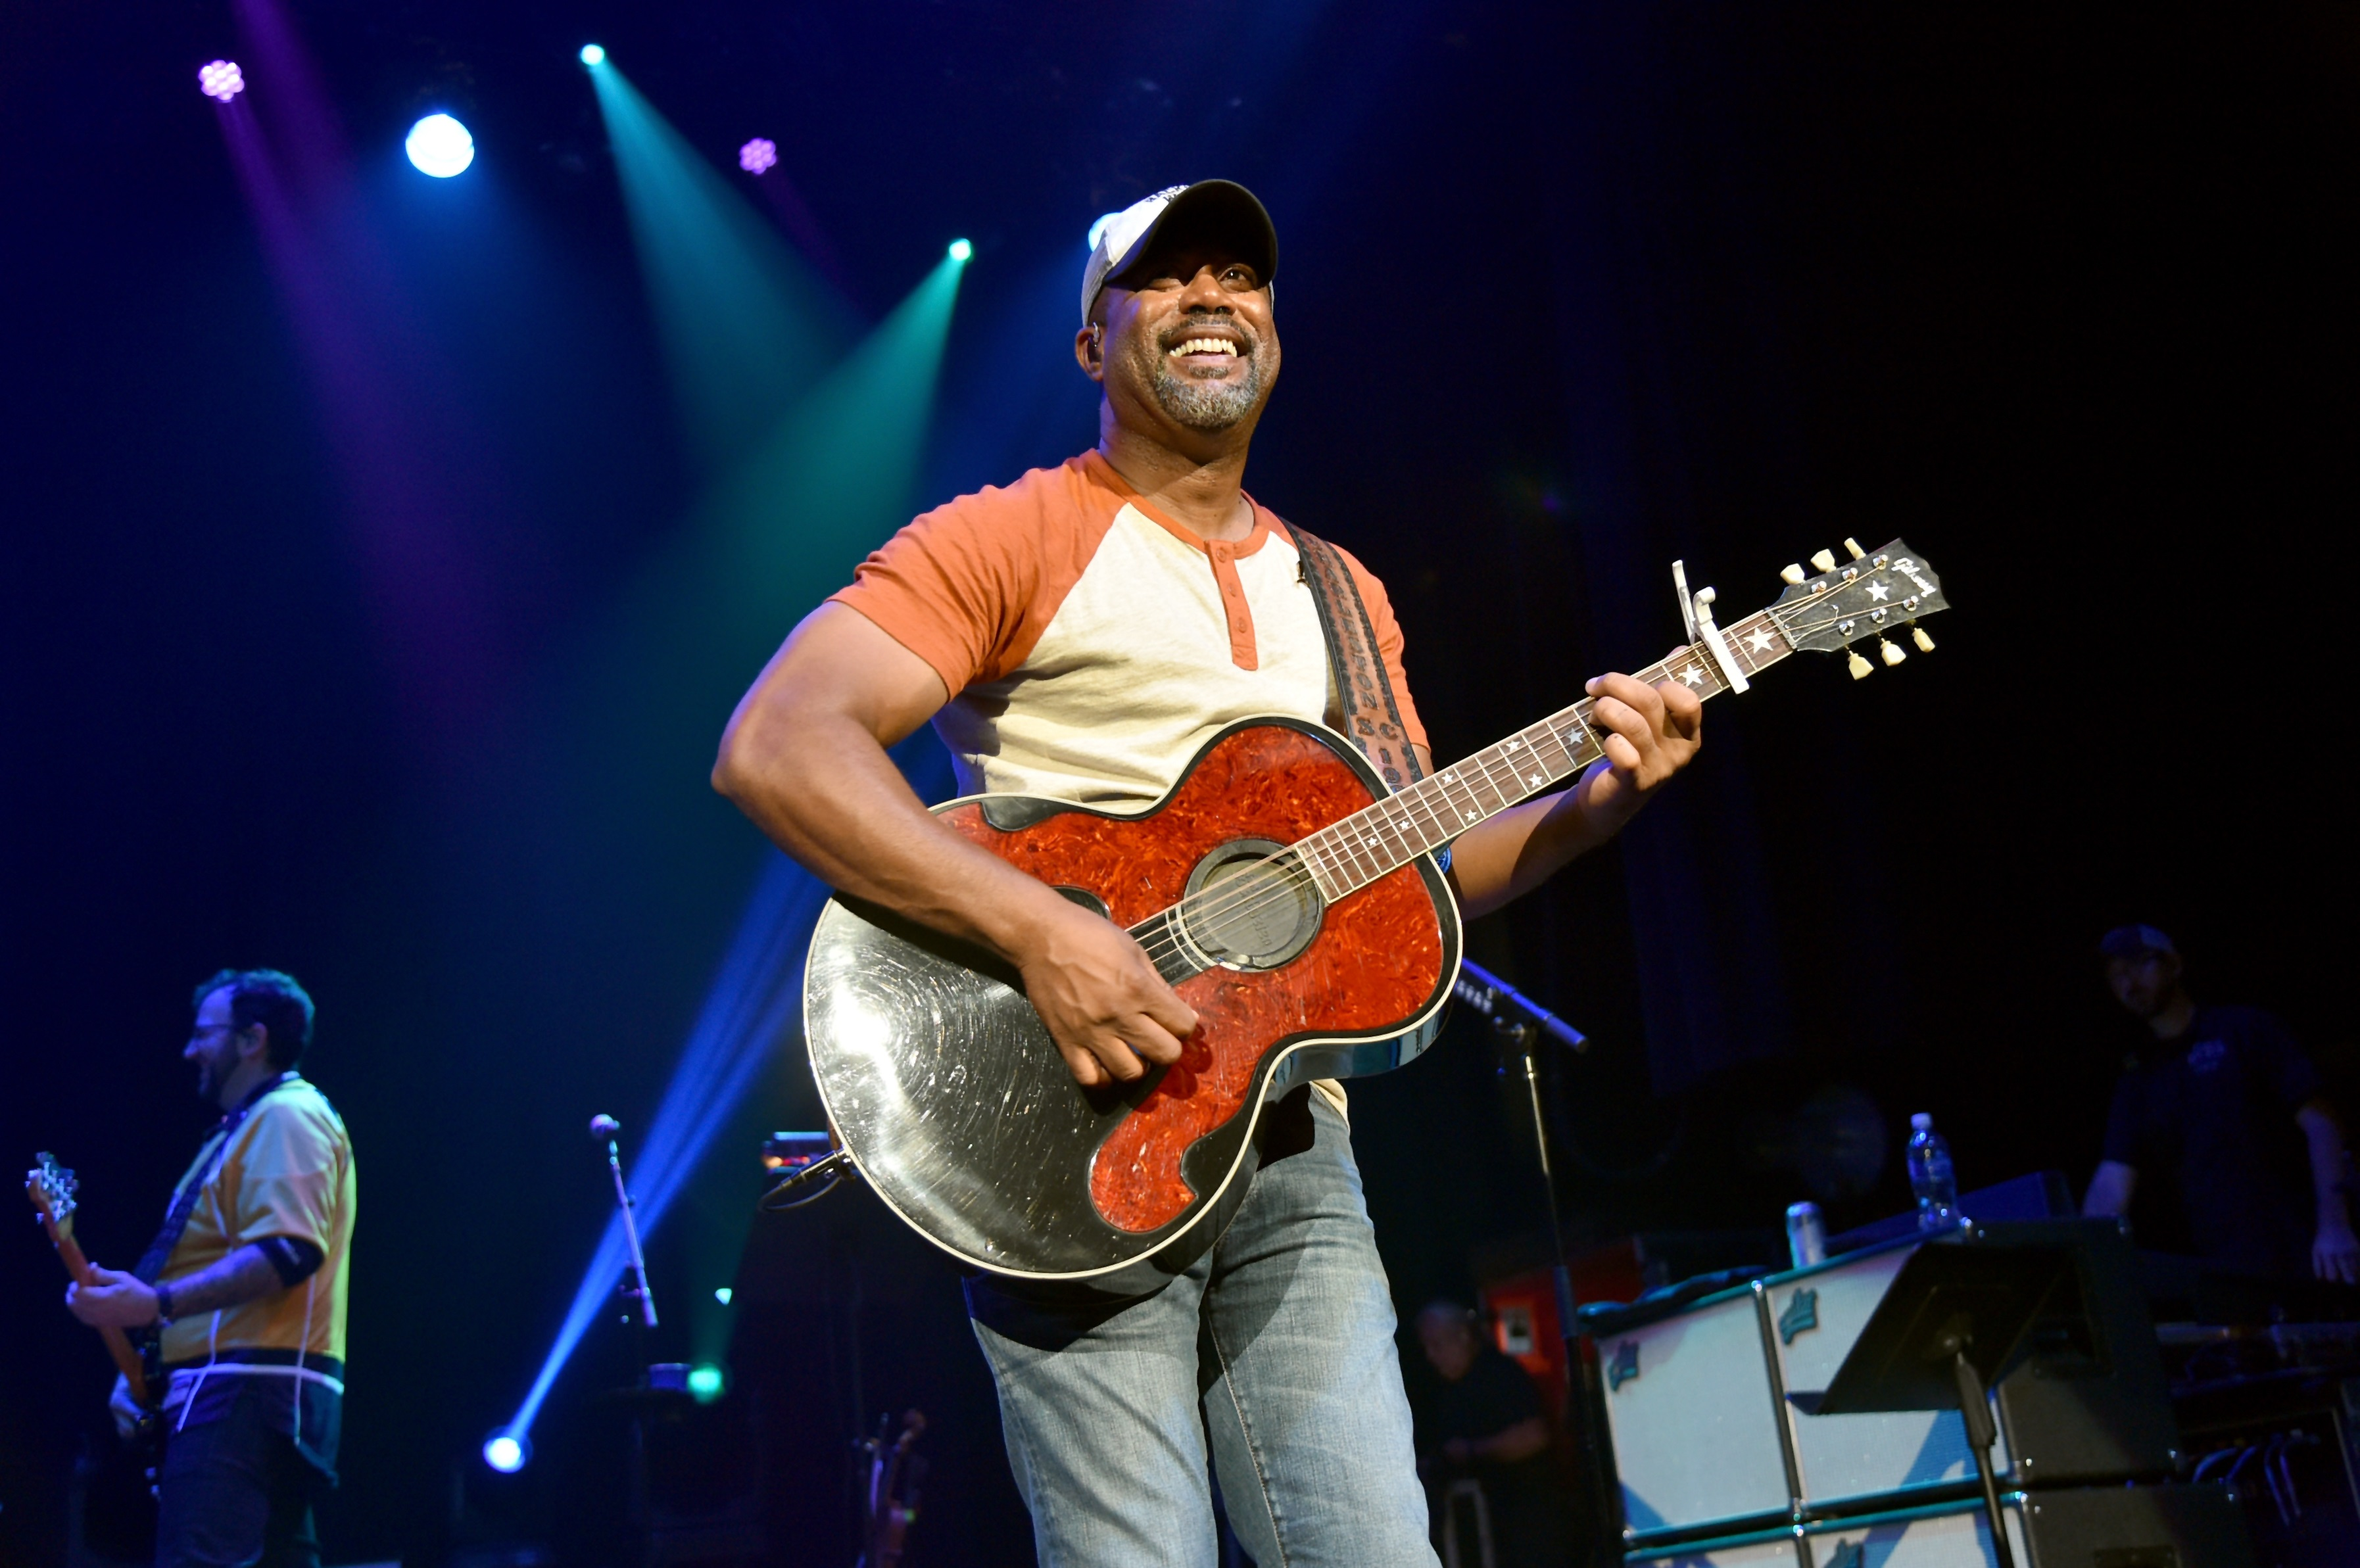 Darius Rucker Gets Fans on Their Feet During Annual Darius Rucker And Friends Concert